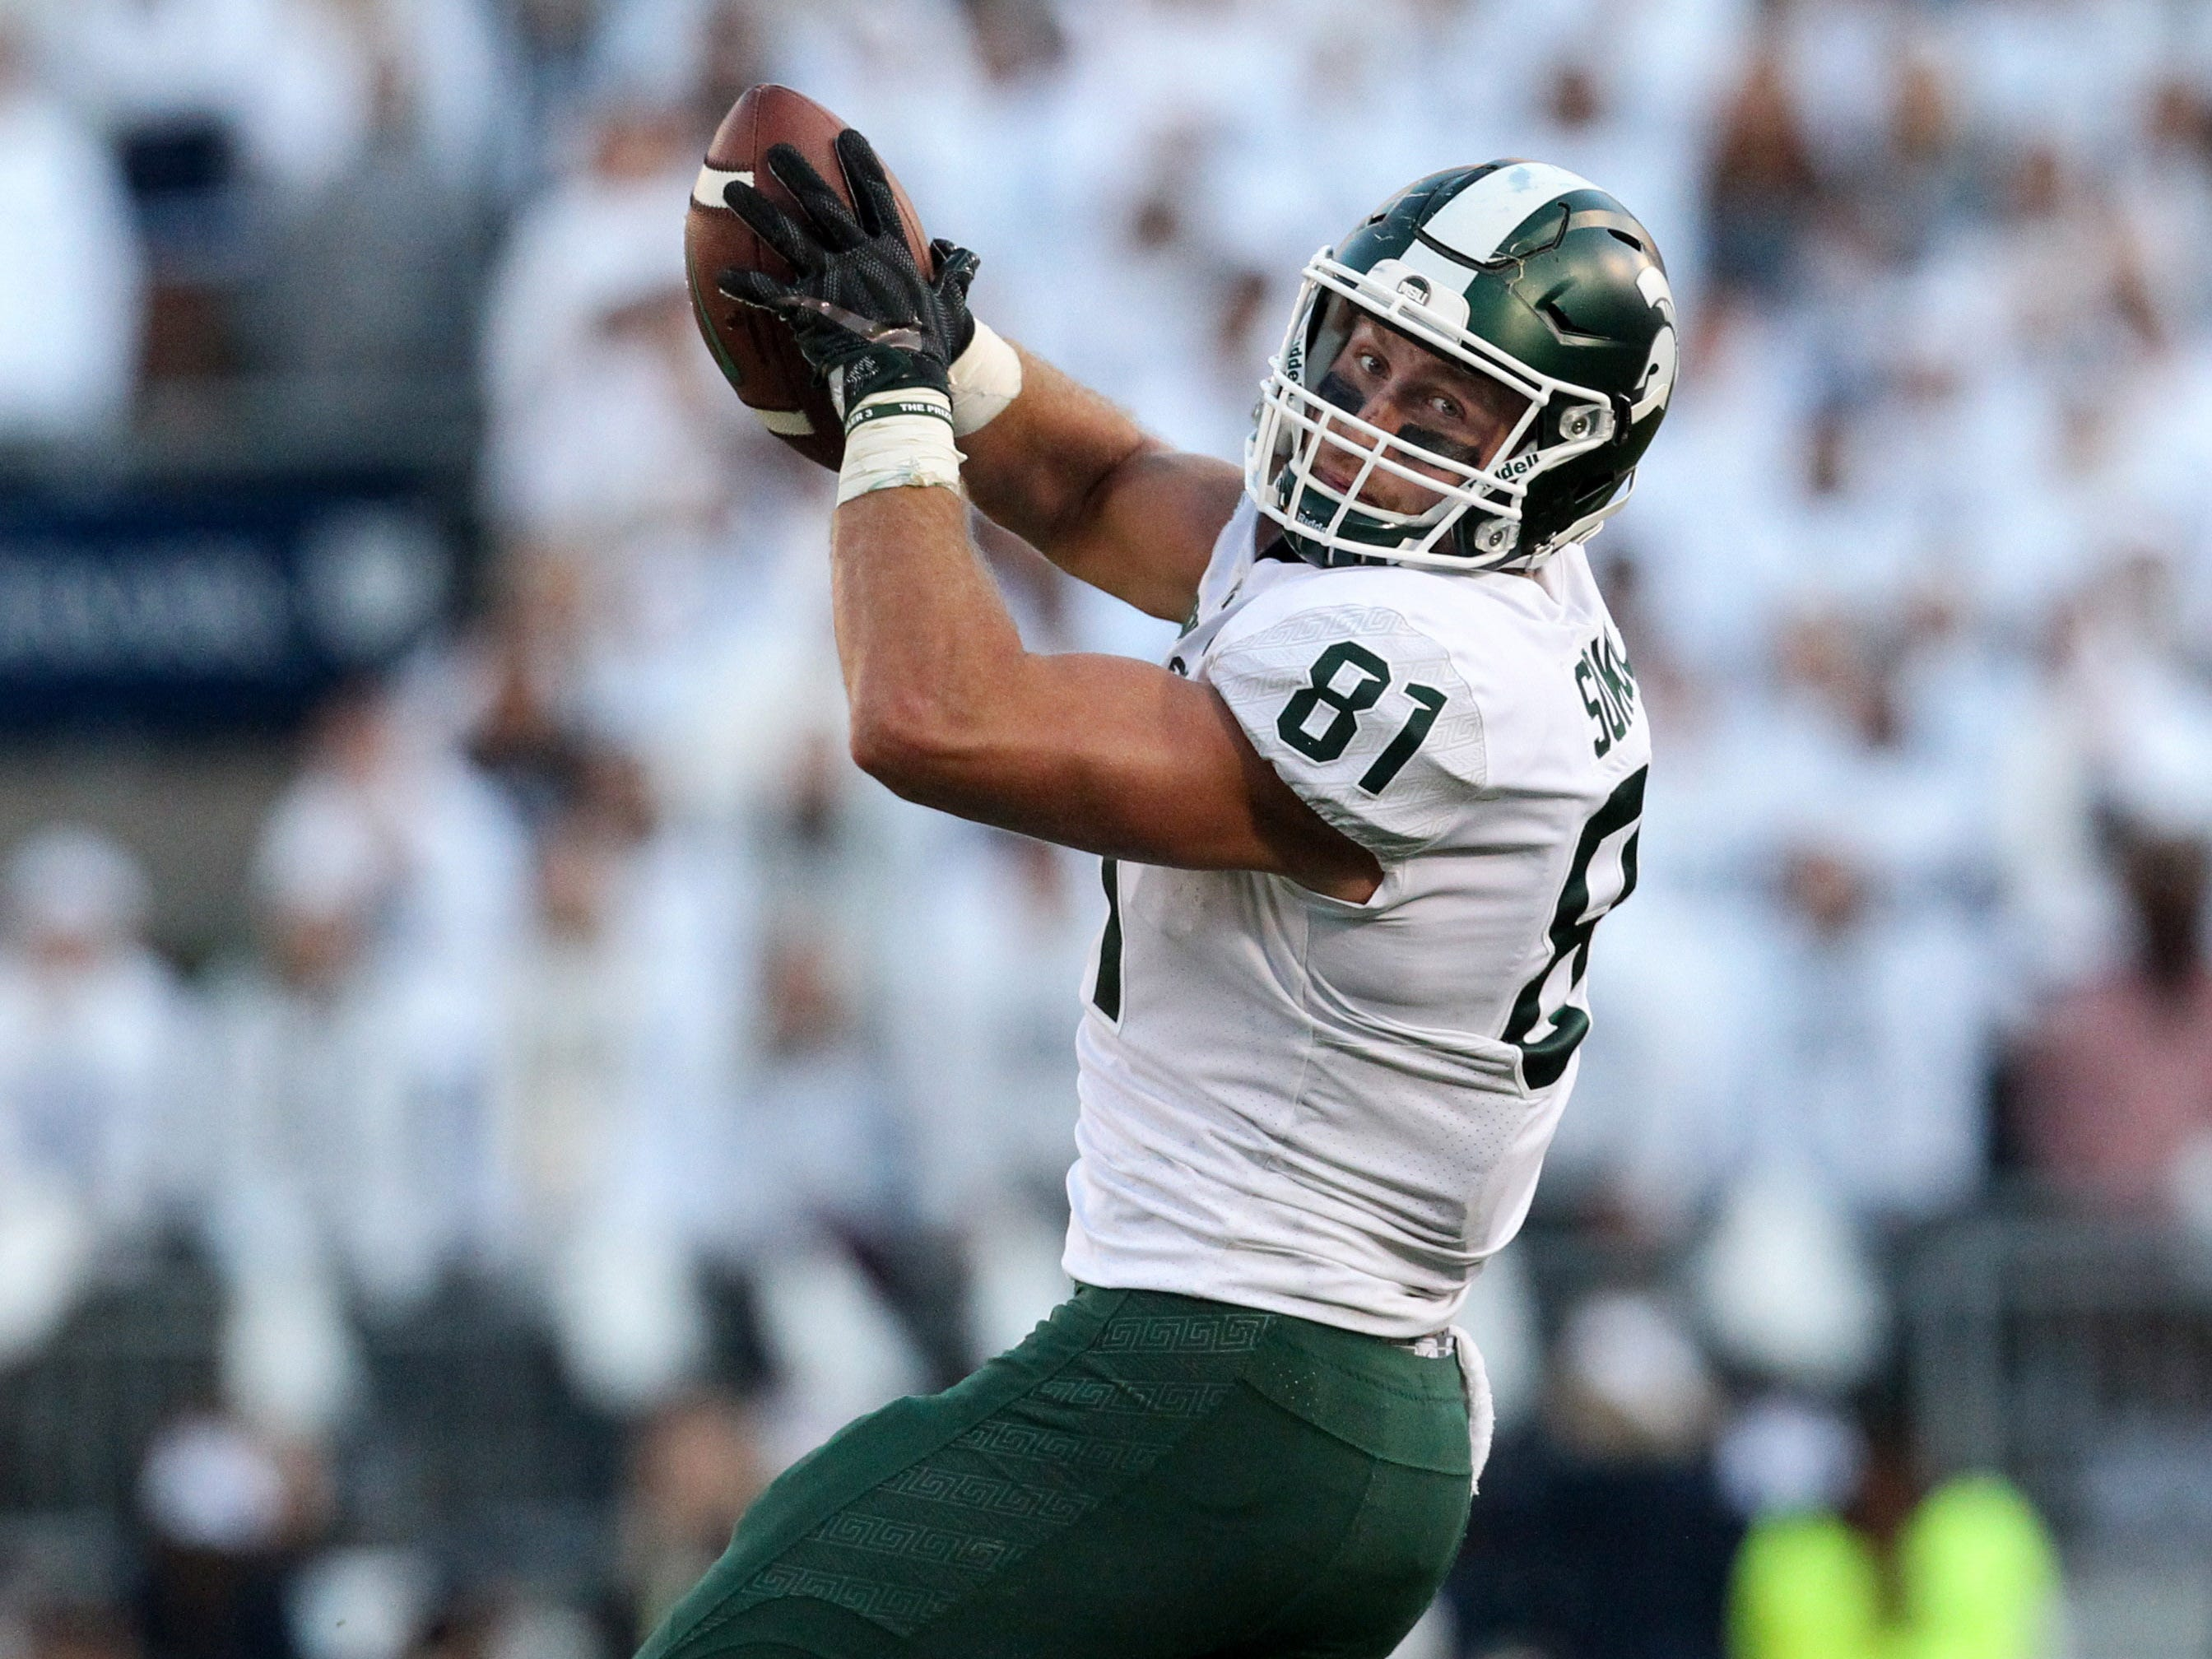 Michigan State Spartans tight end Matt Sokol (81) makes a catch during the third quarter against the Penn State Nittany Lions at Beaver Stadium. Michigan State defeated Penn State 21-17.